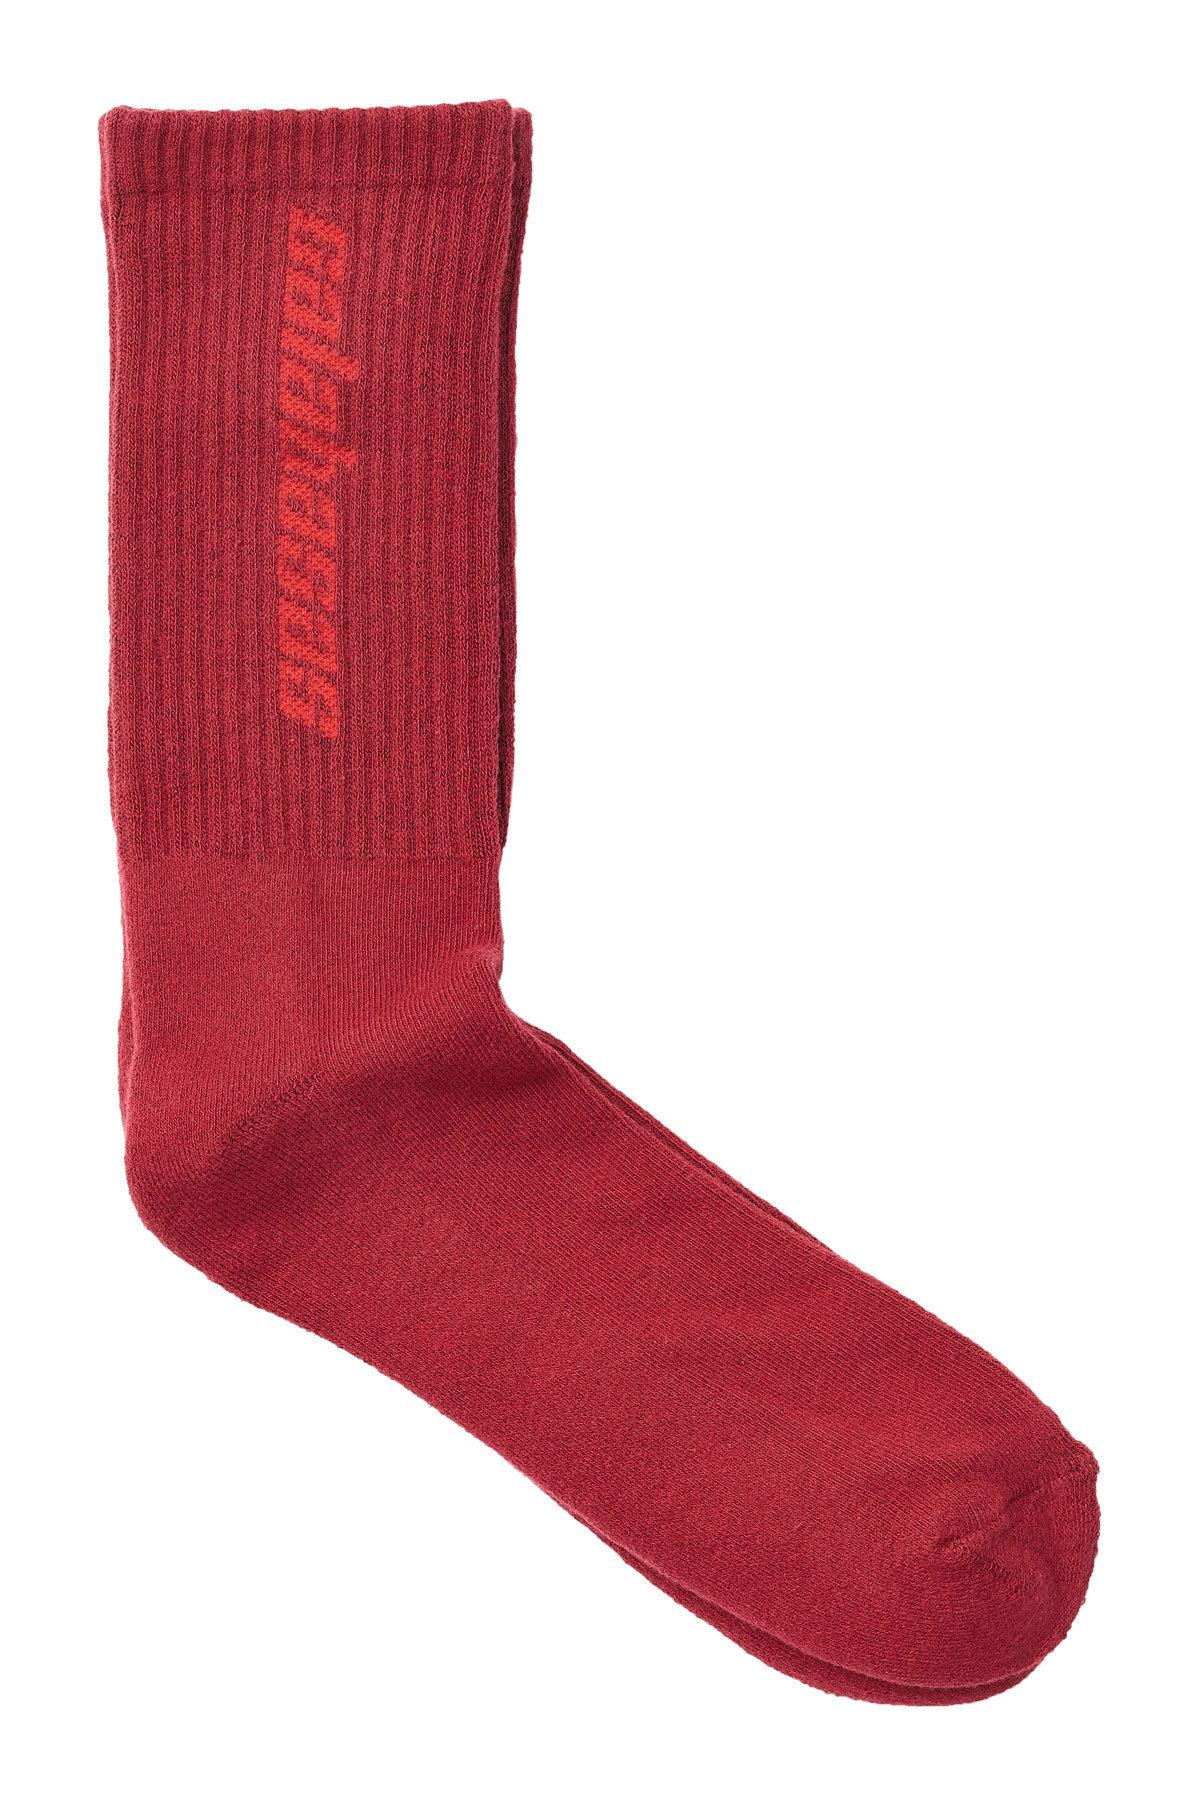 Yeezy Cotton Socks In Red